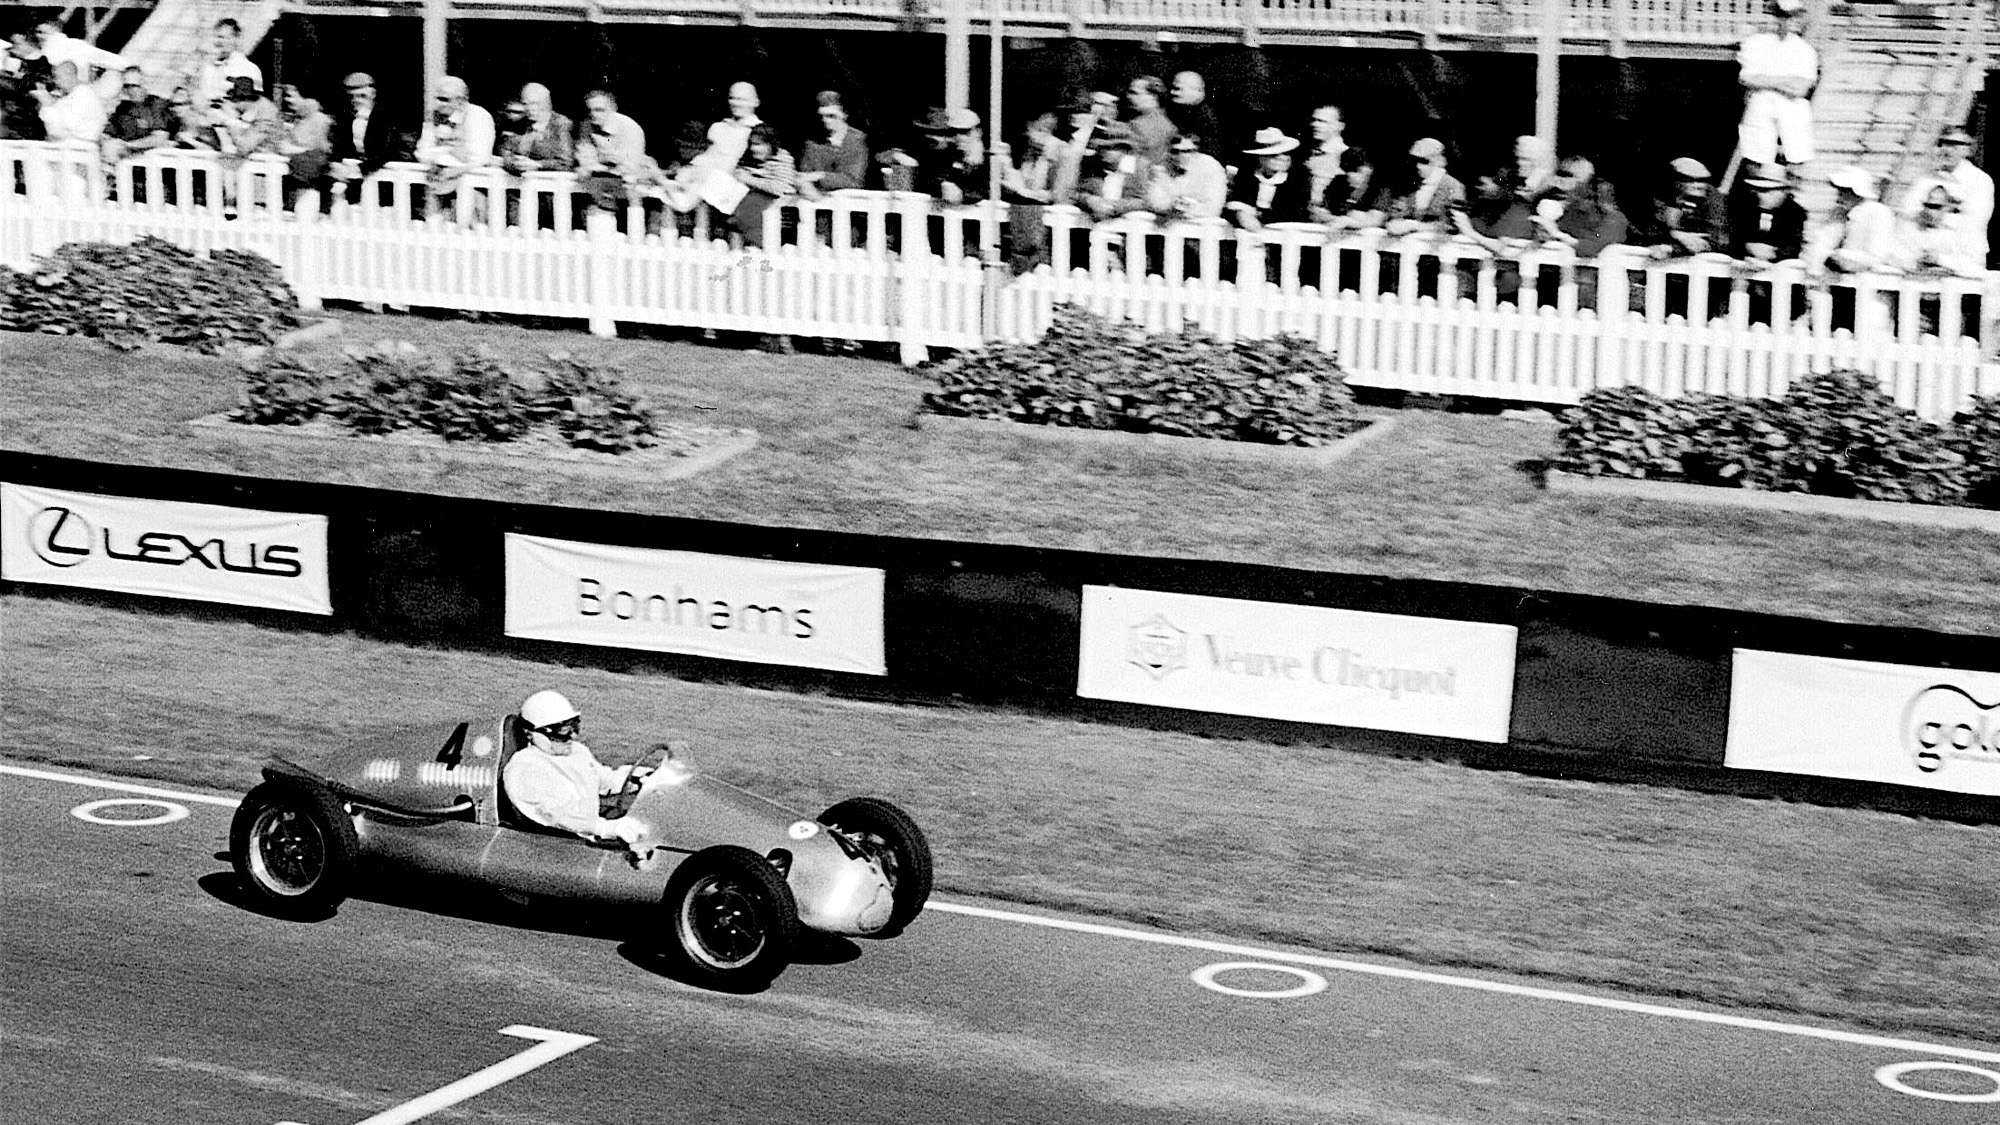 Stirling Moss in 500cc race at Goodwood revival